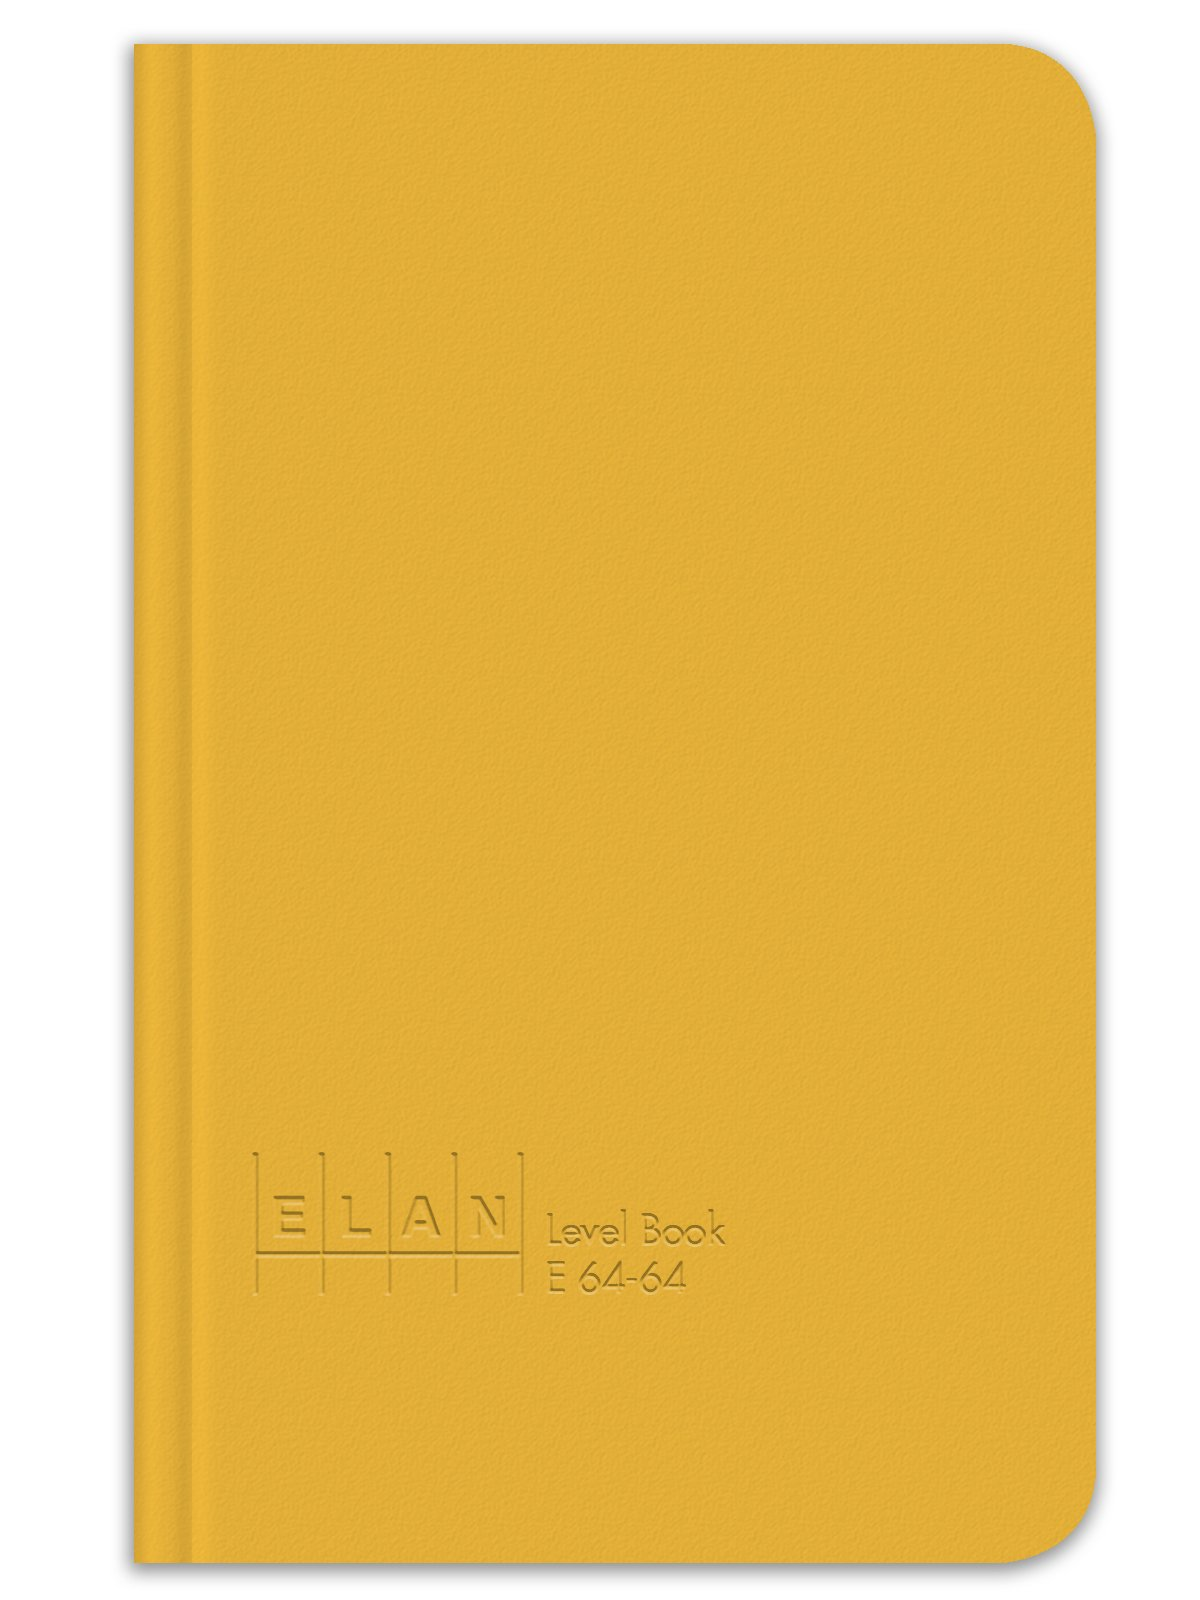 Elan Publishing Company E64-64 Level Book 4 ⅝ x 7 ¼, Yellow Cover (Pack of 6)